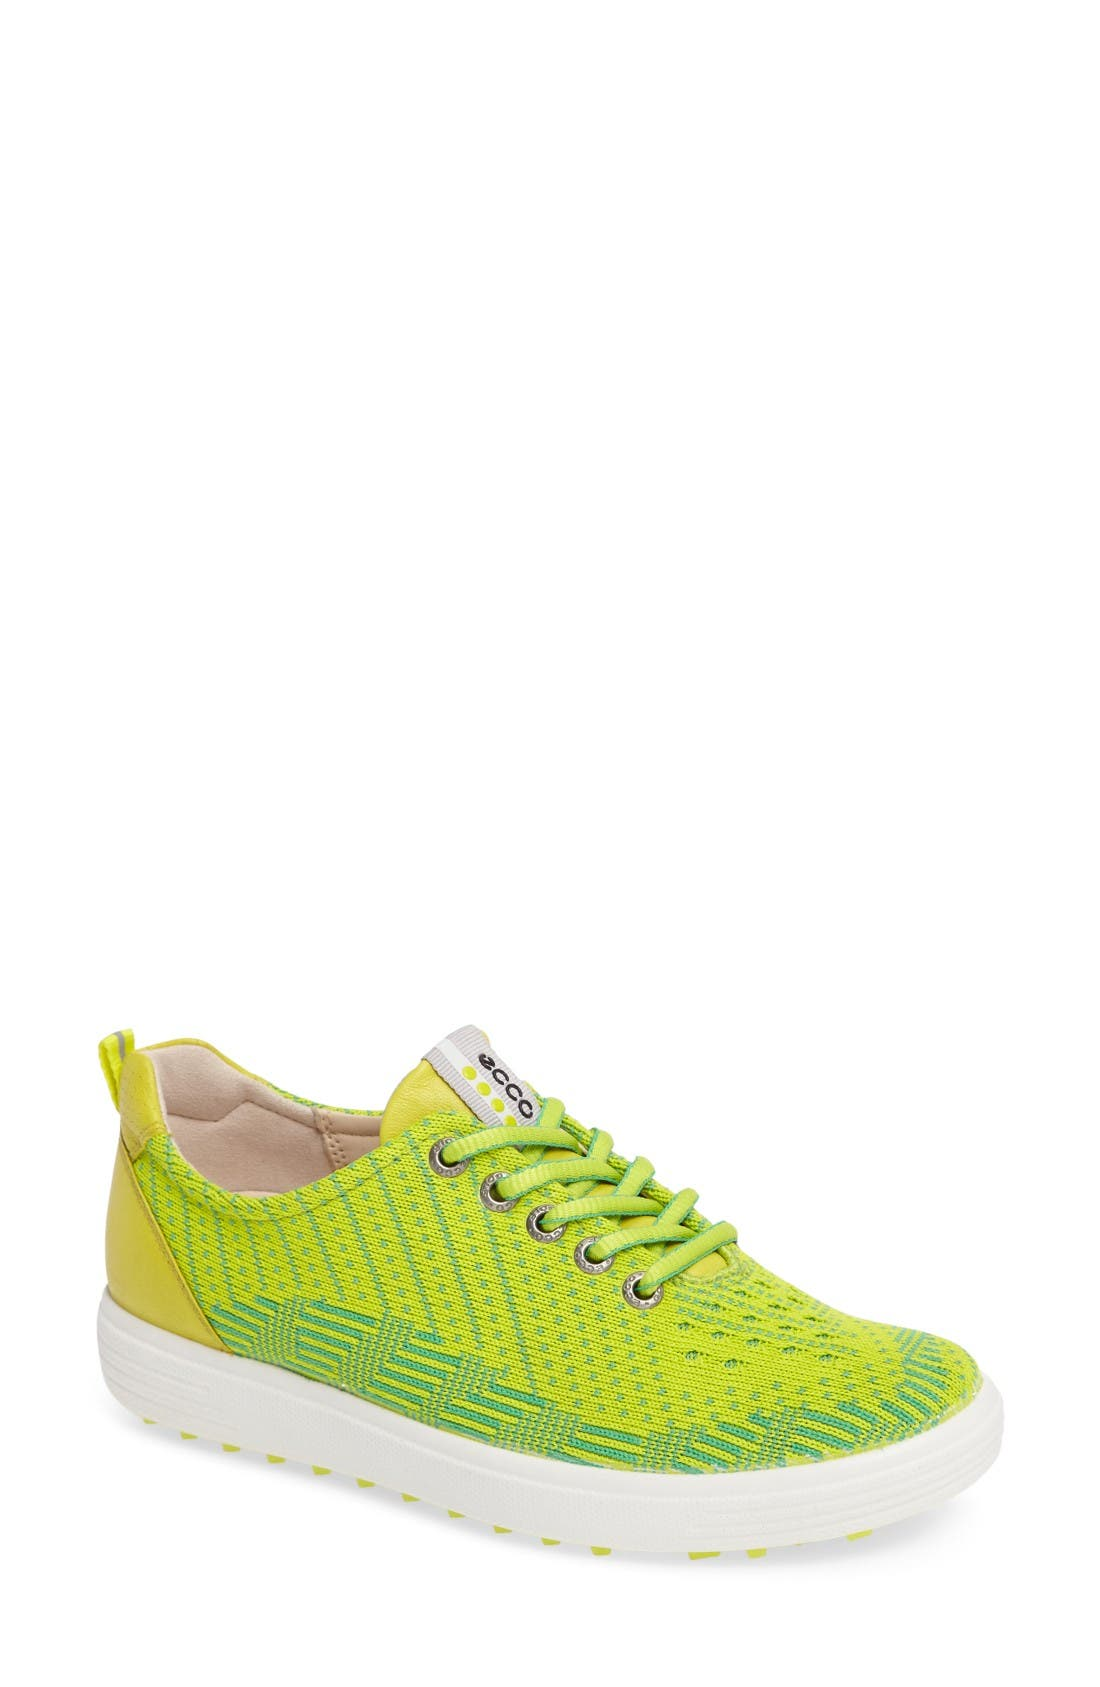 Casual Hybrid Knit Golf Sneaker,                         Main,                         color, Lime Punch/ Neon Leather